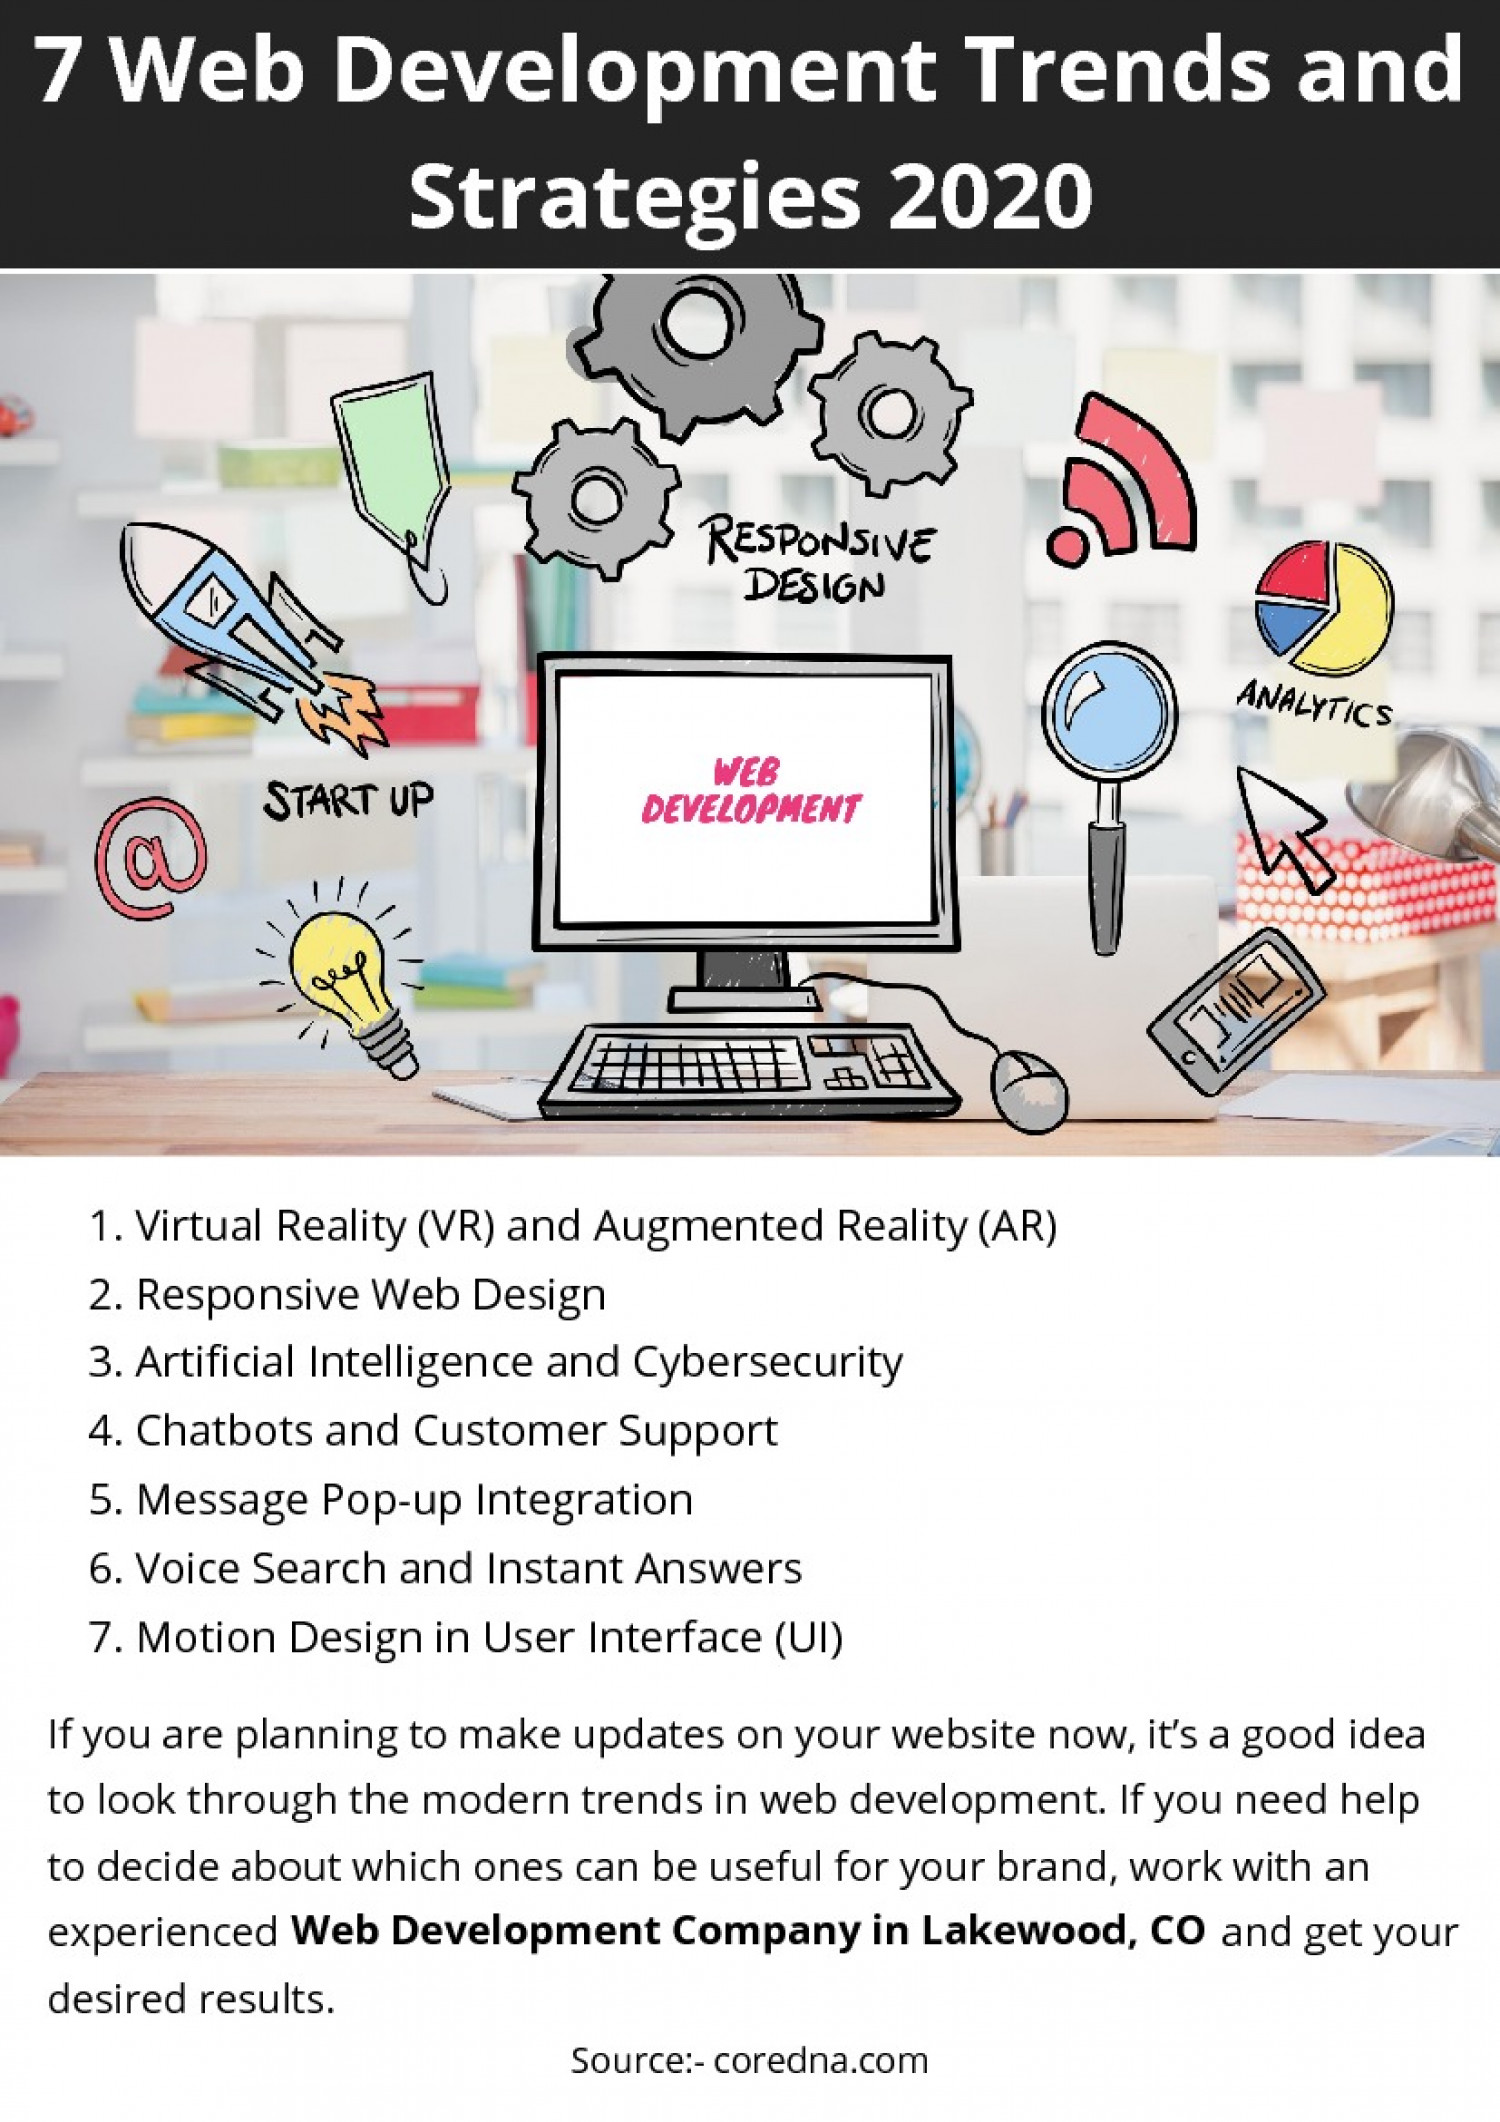 7 Web Development Trends and Strategies 2020 Infographic